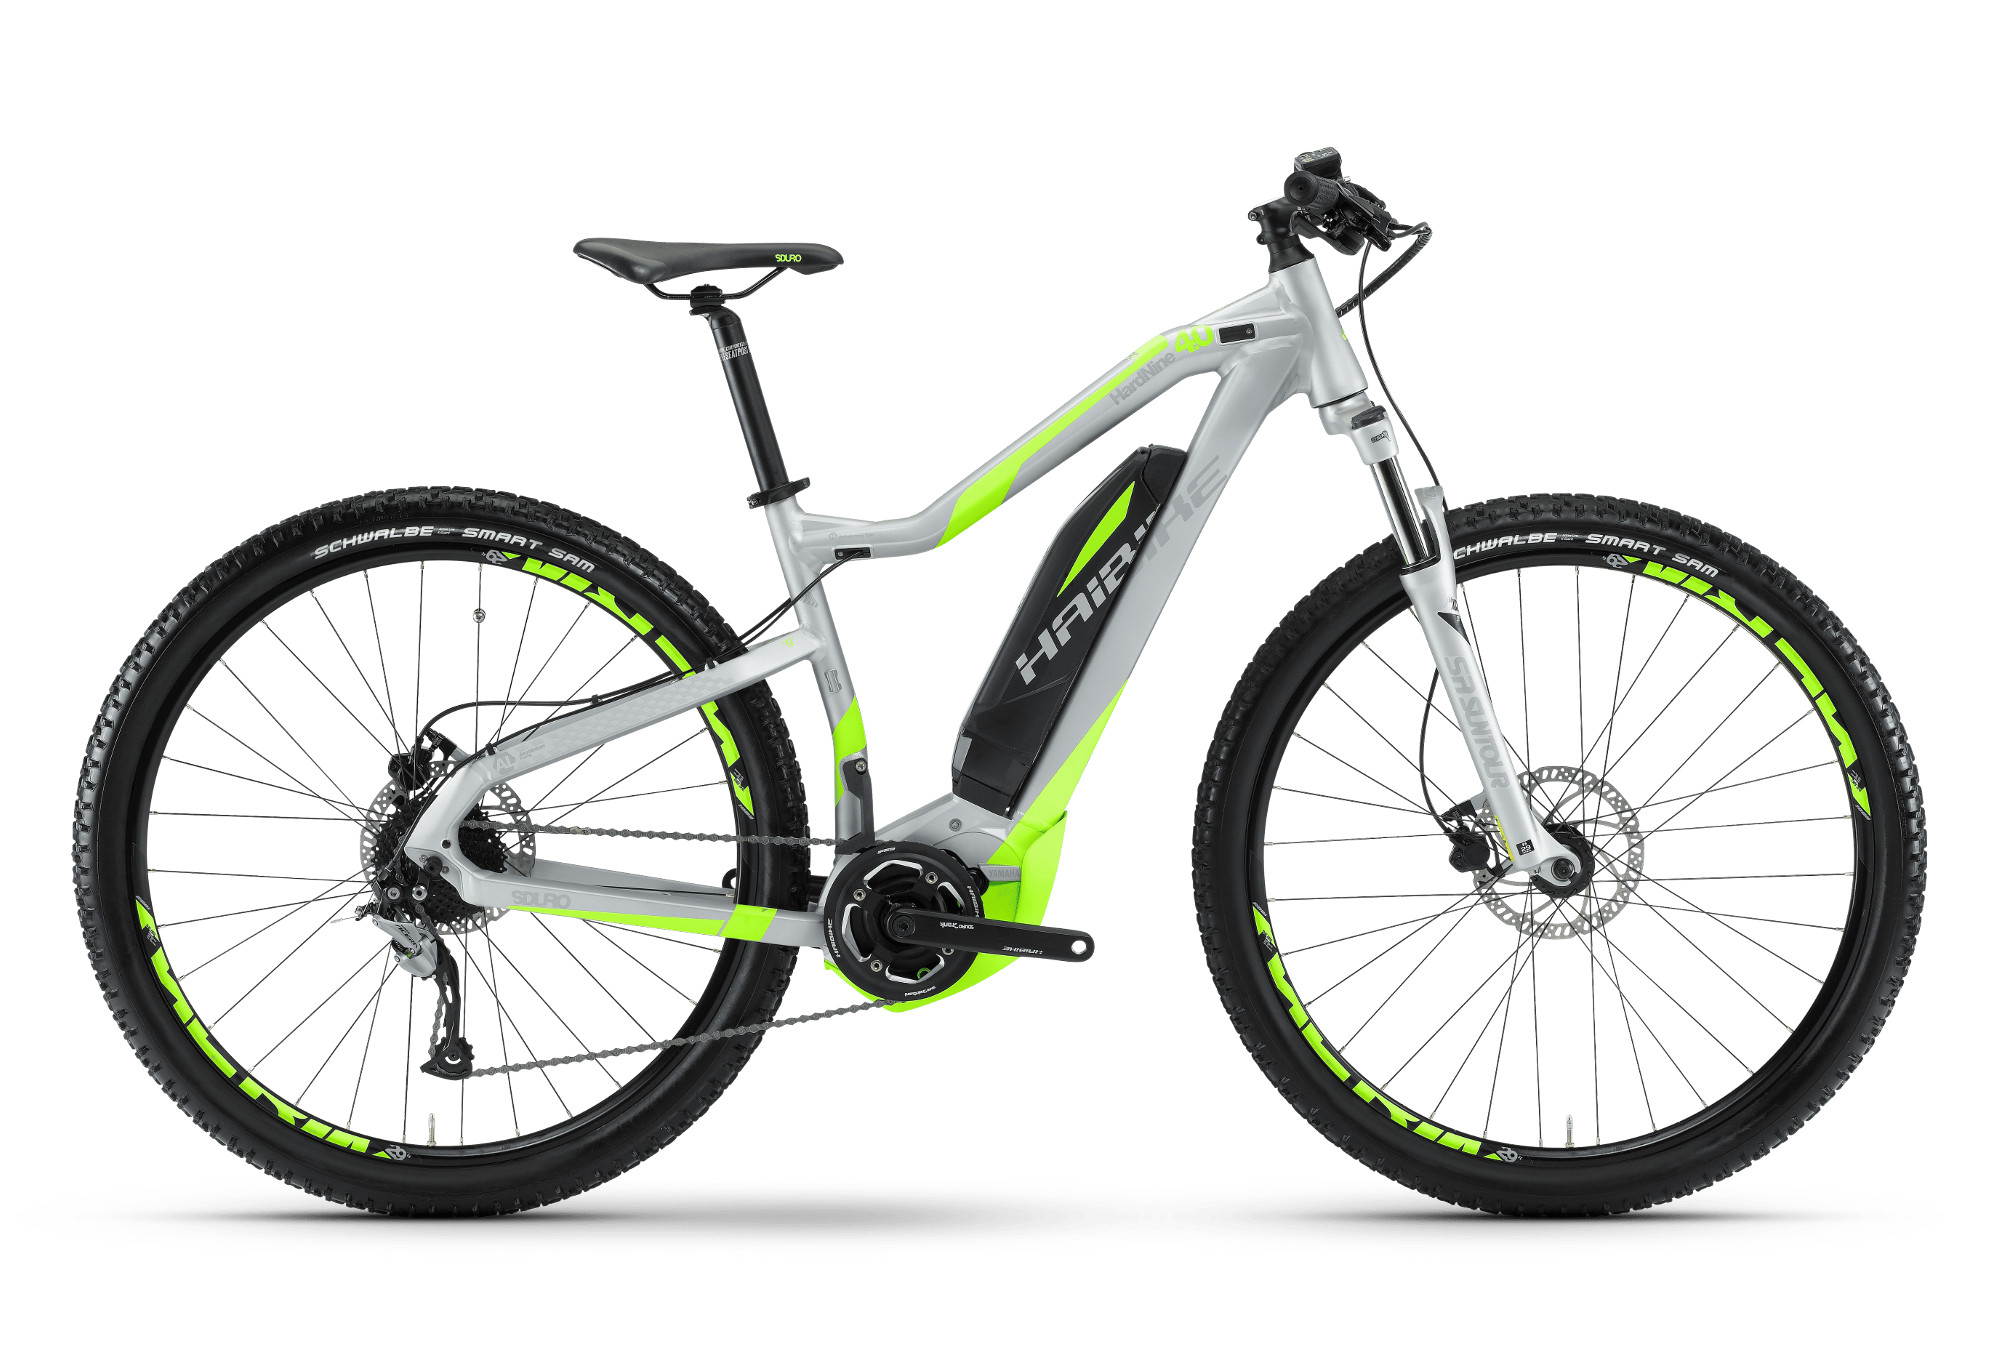 vtt lectrique haibike sduro hardnine 4 0 29 shimano acera 9v 400w argent vert. Black Bedroom Furniture Sets. Home Design Ideas